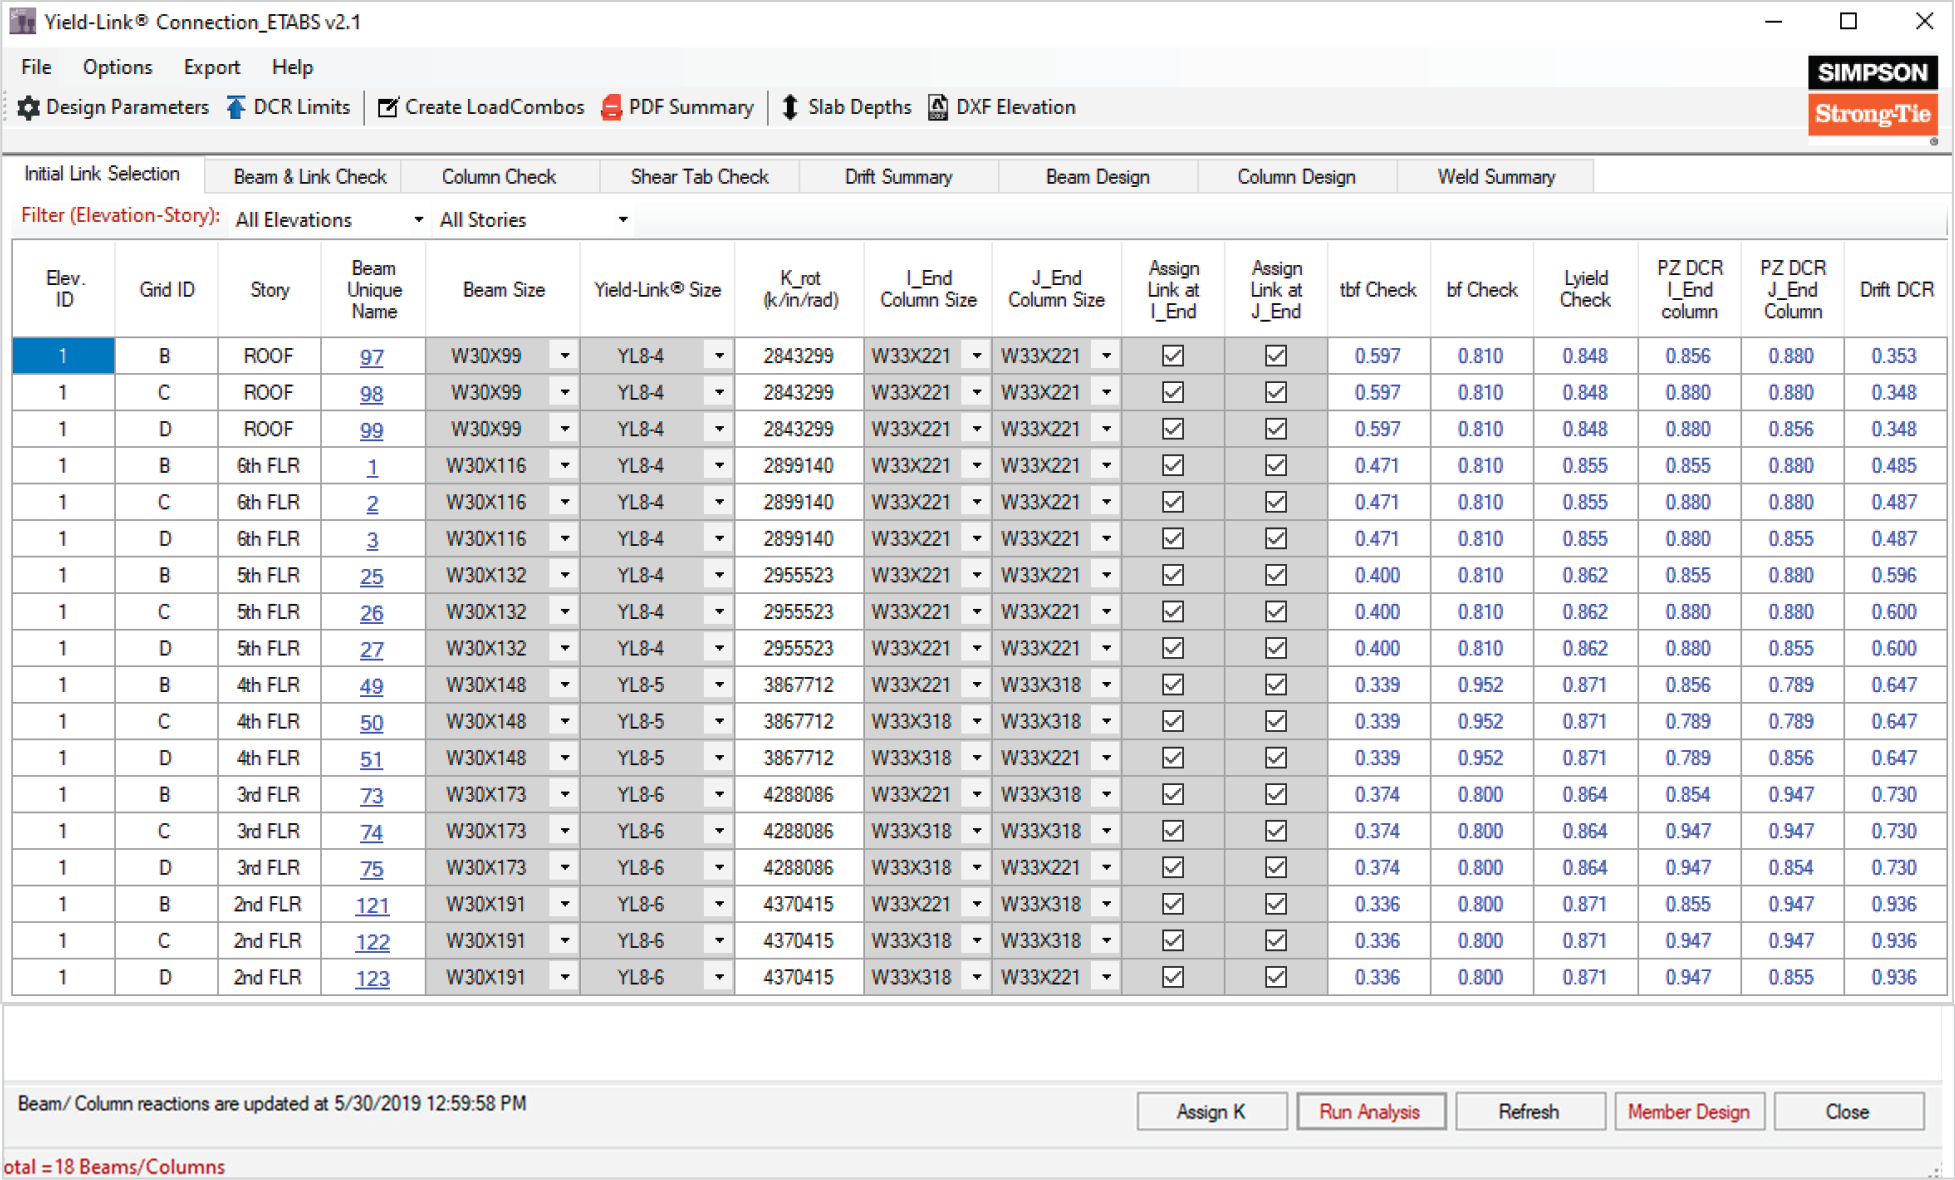 Screen Shot of Yield Link Connection_ETABS v2.1